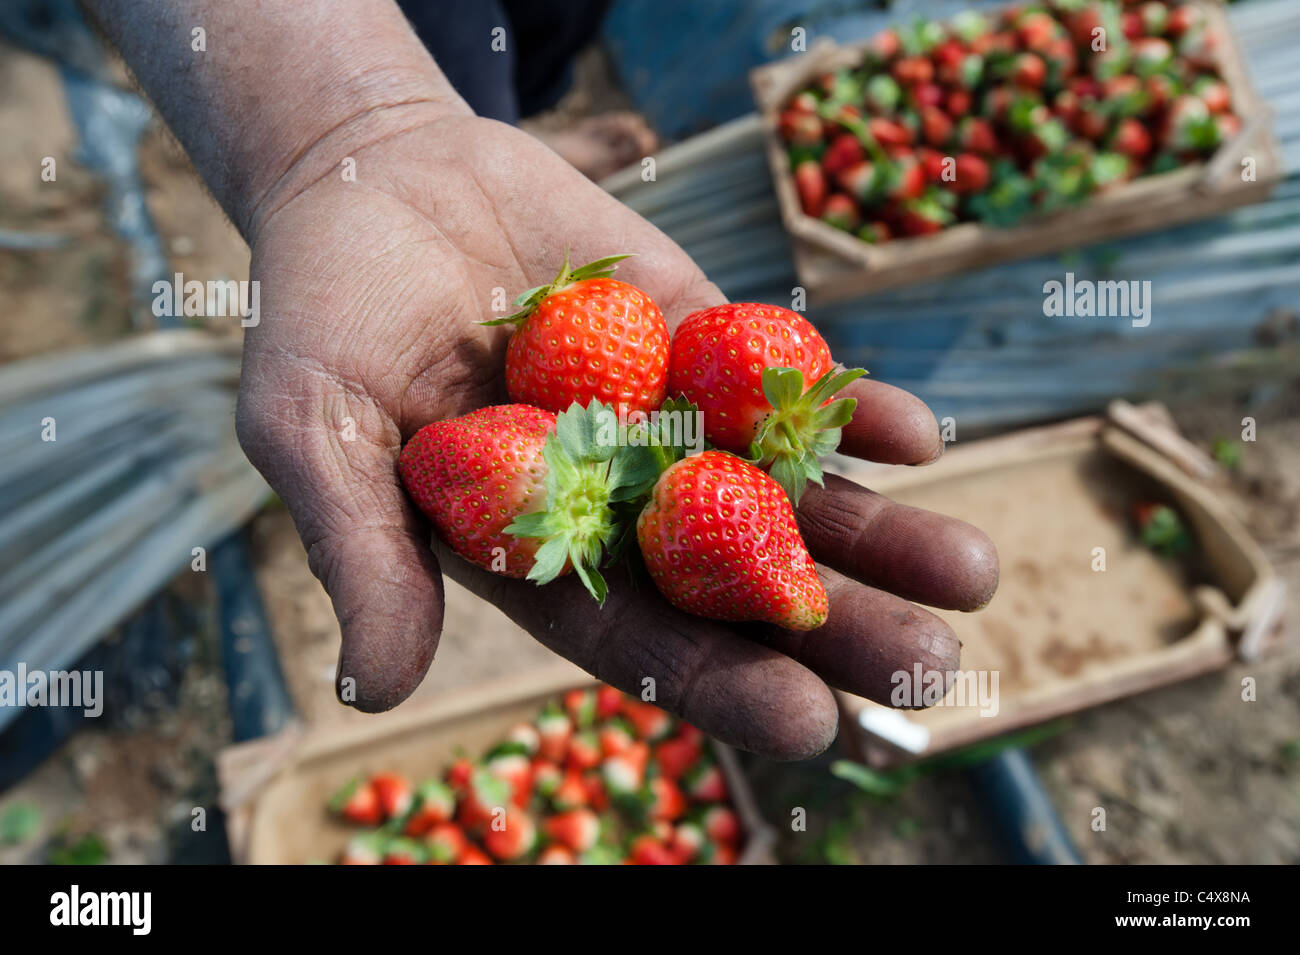 A Palestinian man holds a handful of freshly picked strawberries on a farm in northern Gaza. - Stock Image